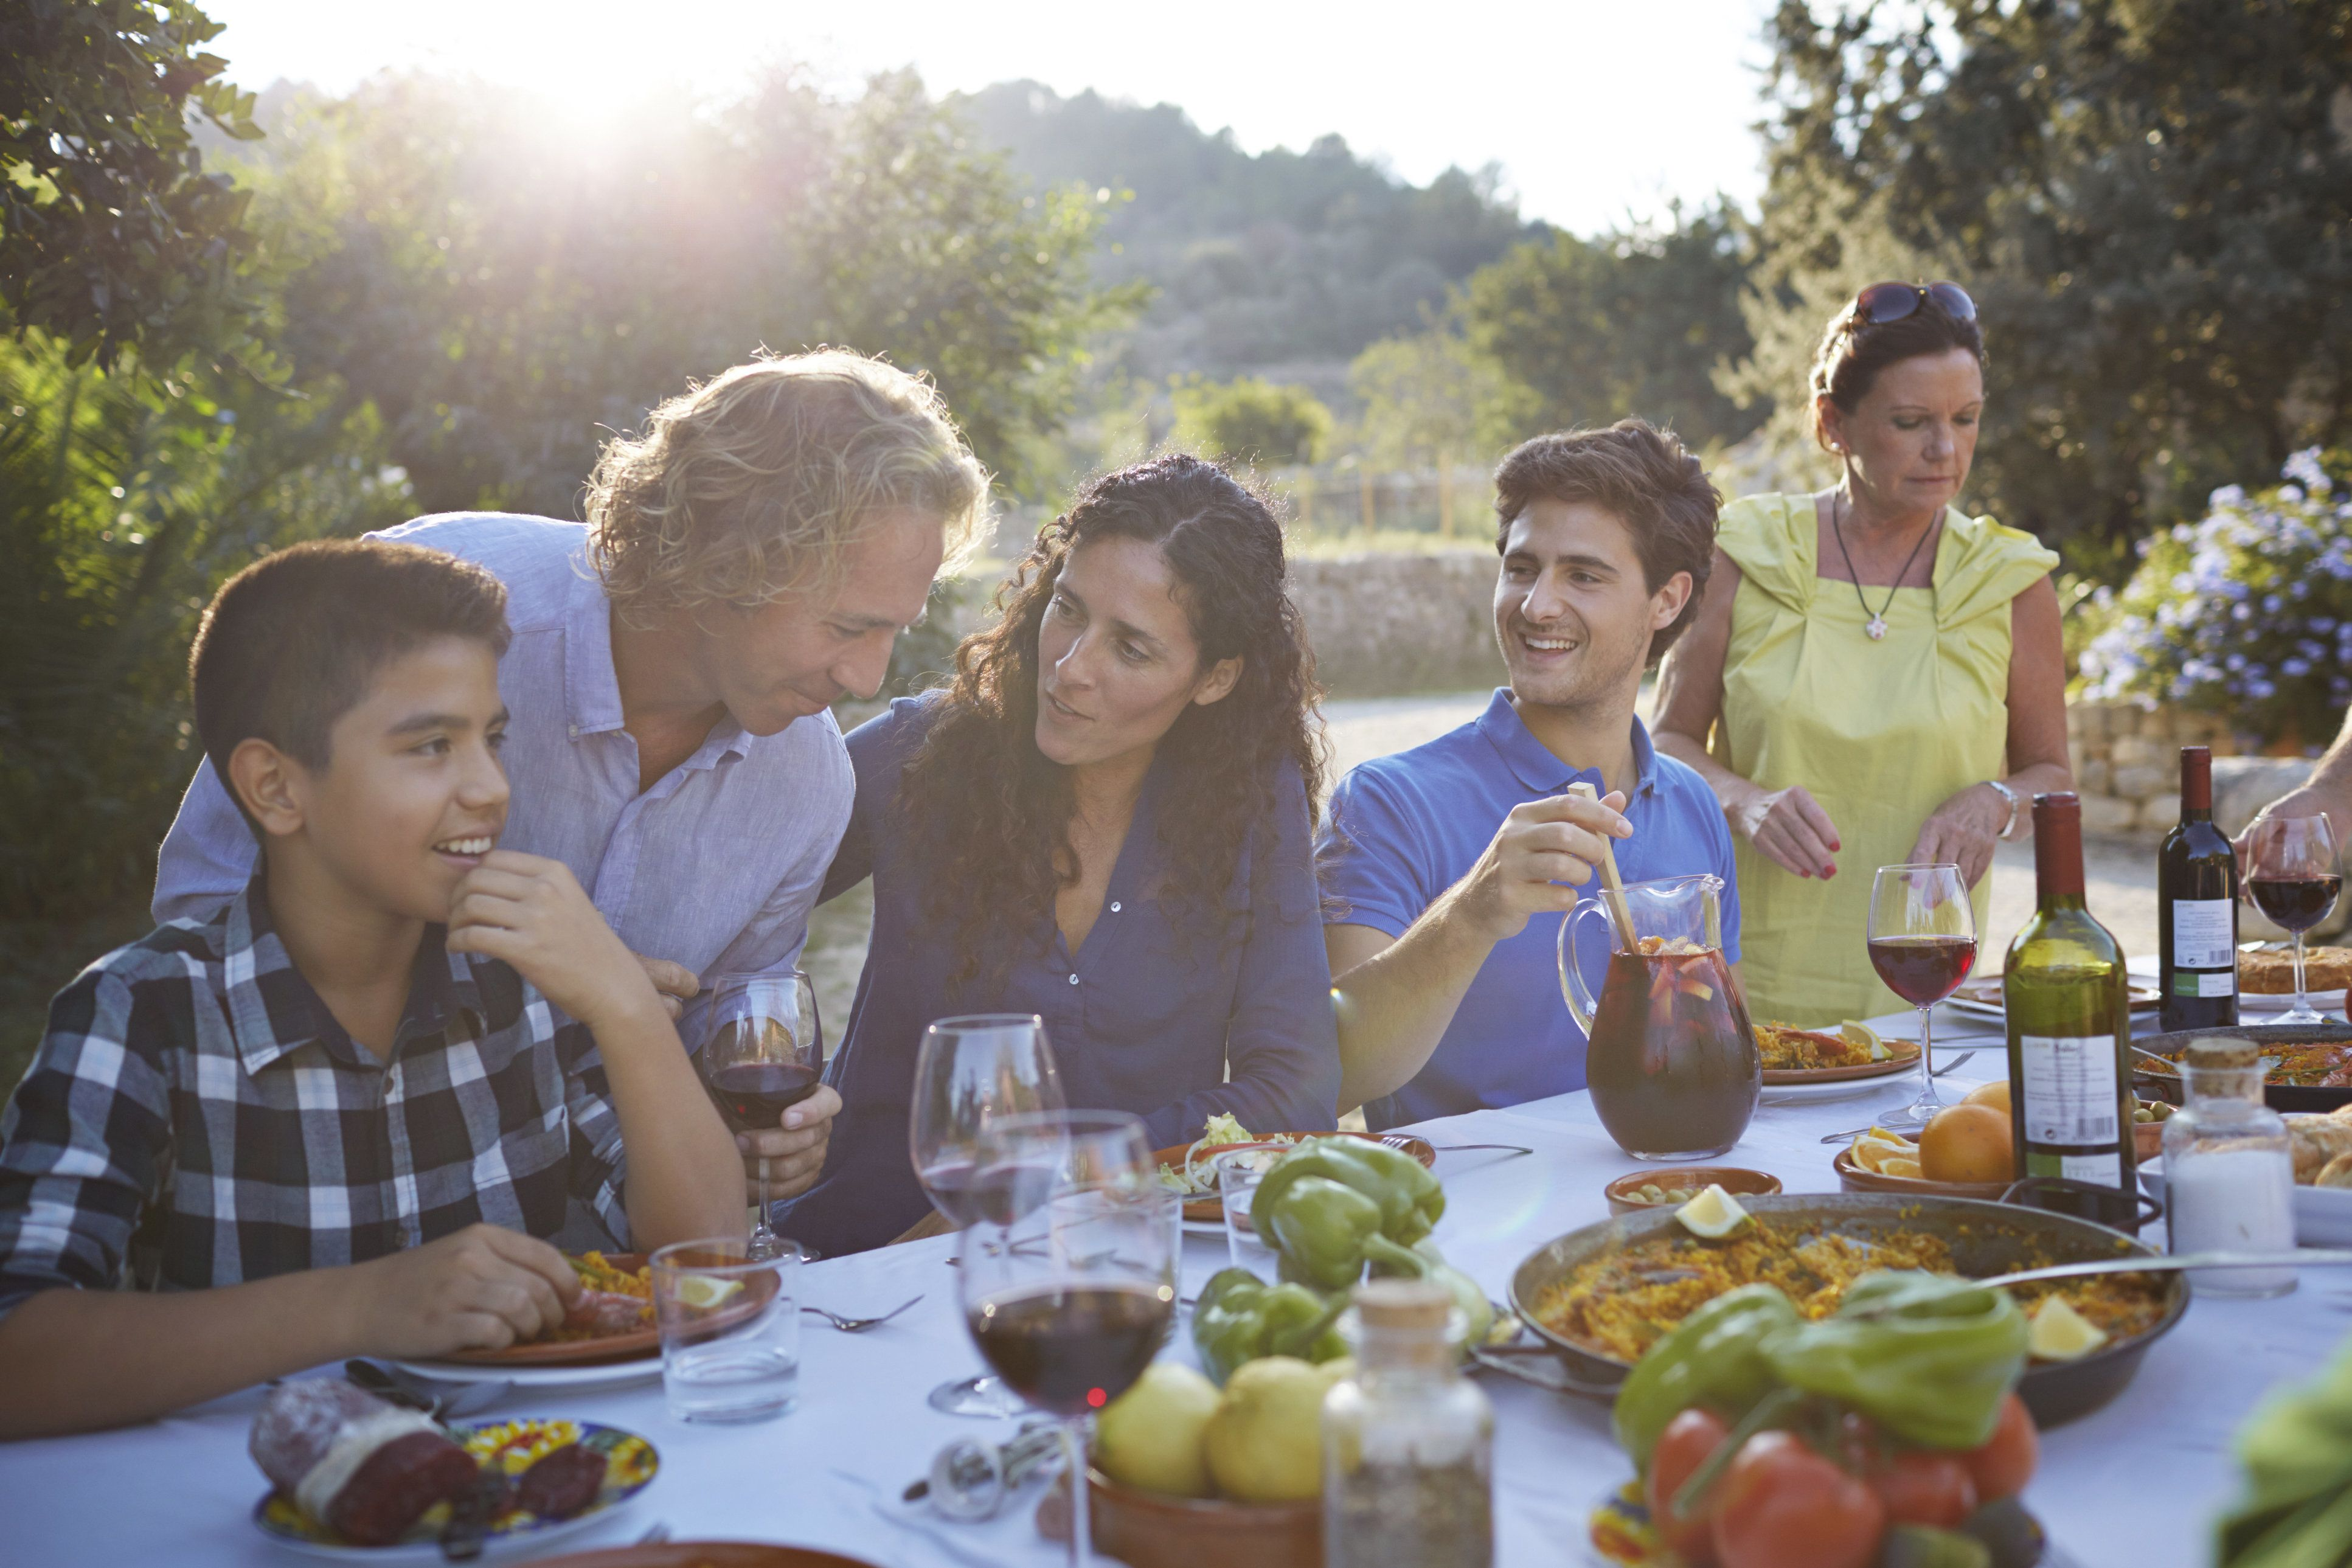 Multigenerational family laughing together at dinner table in garden at sunset